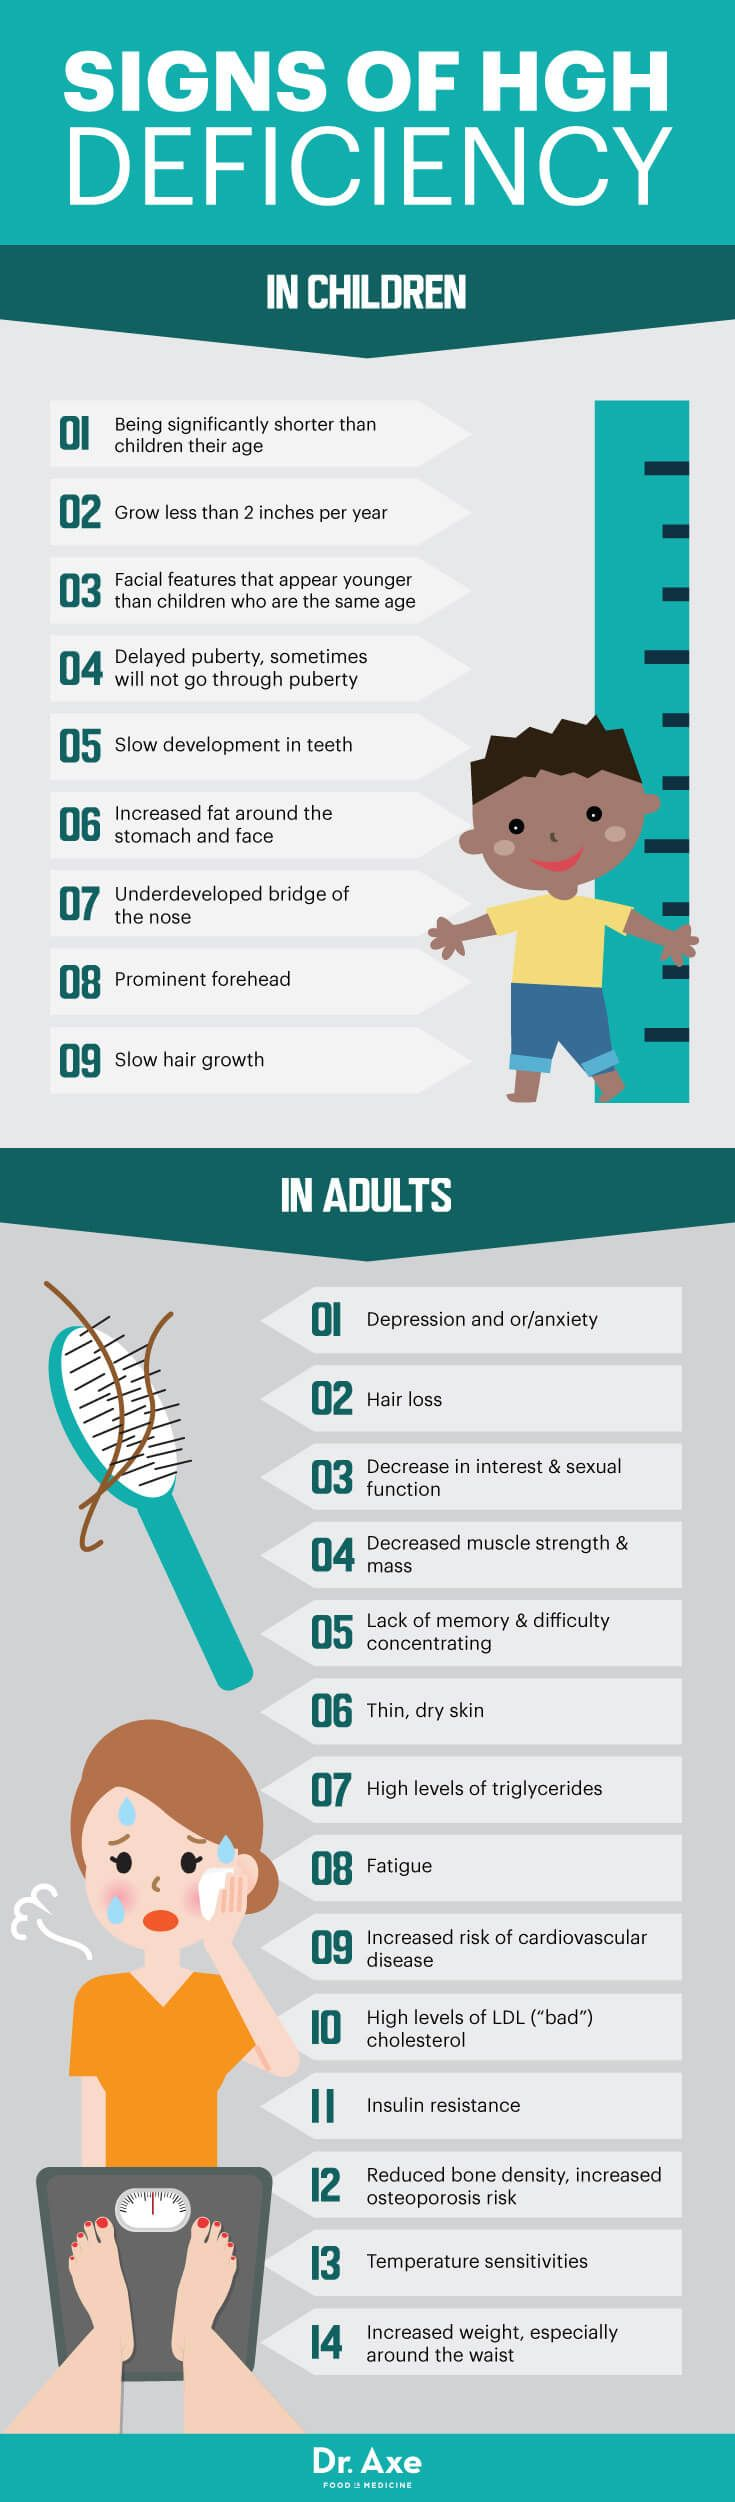 Signs of HGH deficiency - Dr. Axe http://www.draxe.com #health #holistic #natural